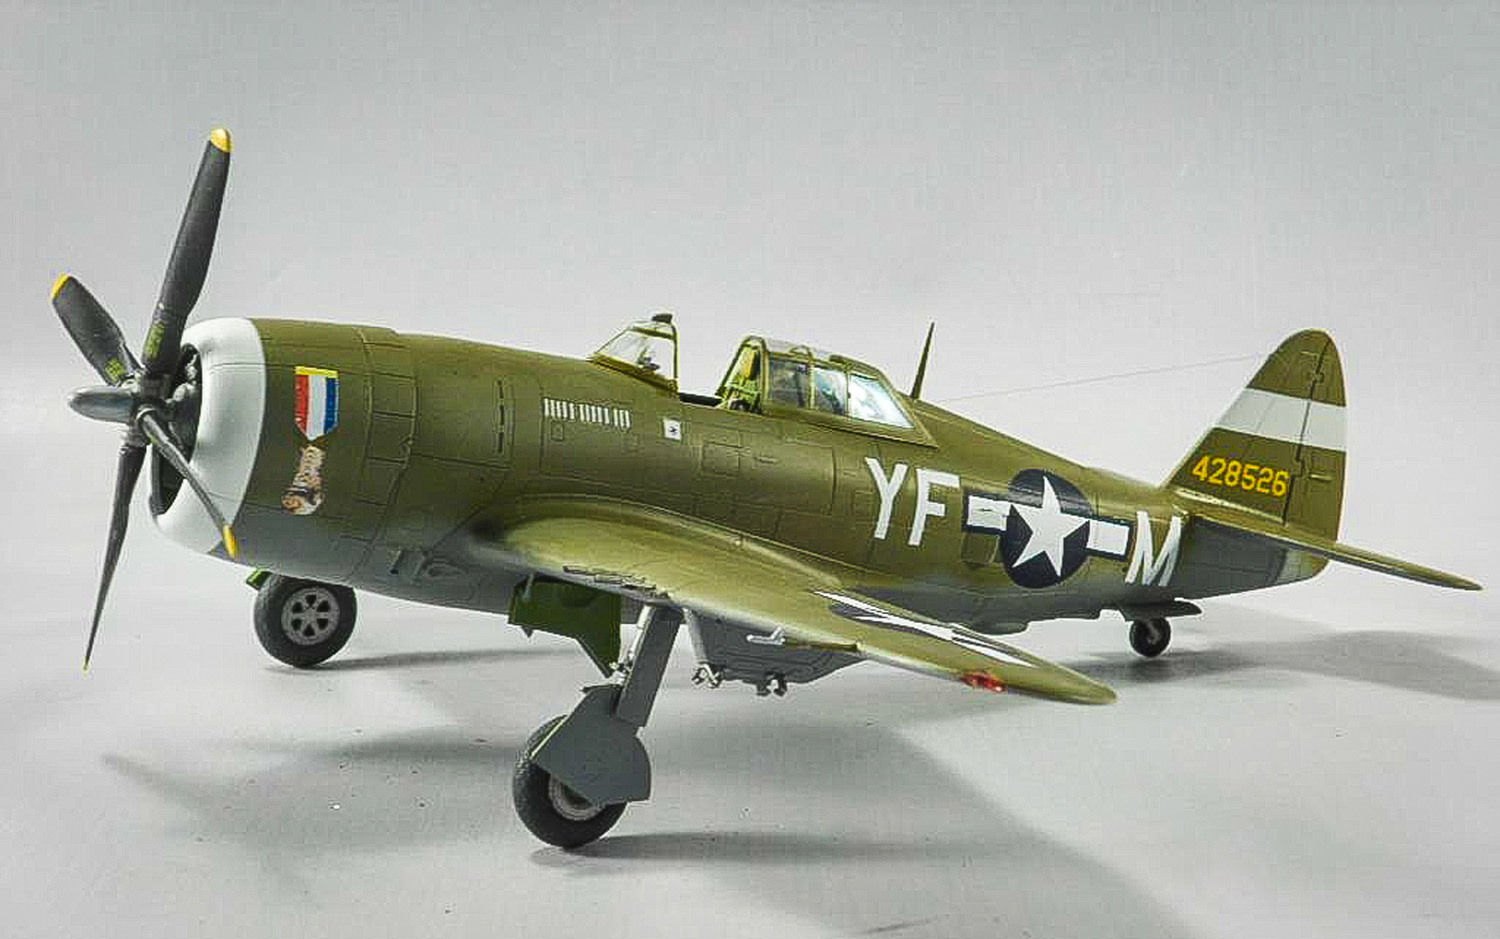 A replica of the Golden Glove P-47 Thunderbolt piloted by Capt. Carl Ekstrom was created by Frank Cronin for Victoria Thomson in memory of her father. Ekstrom was shot down over France following a bomber escort mission. (Courtesy photo)